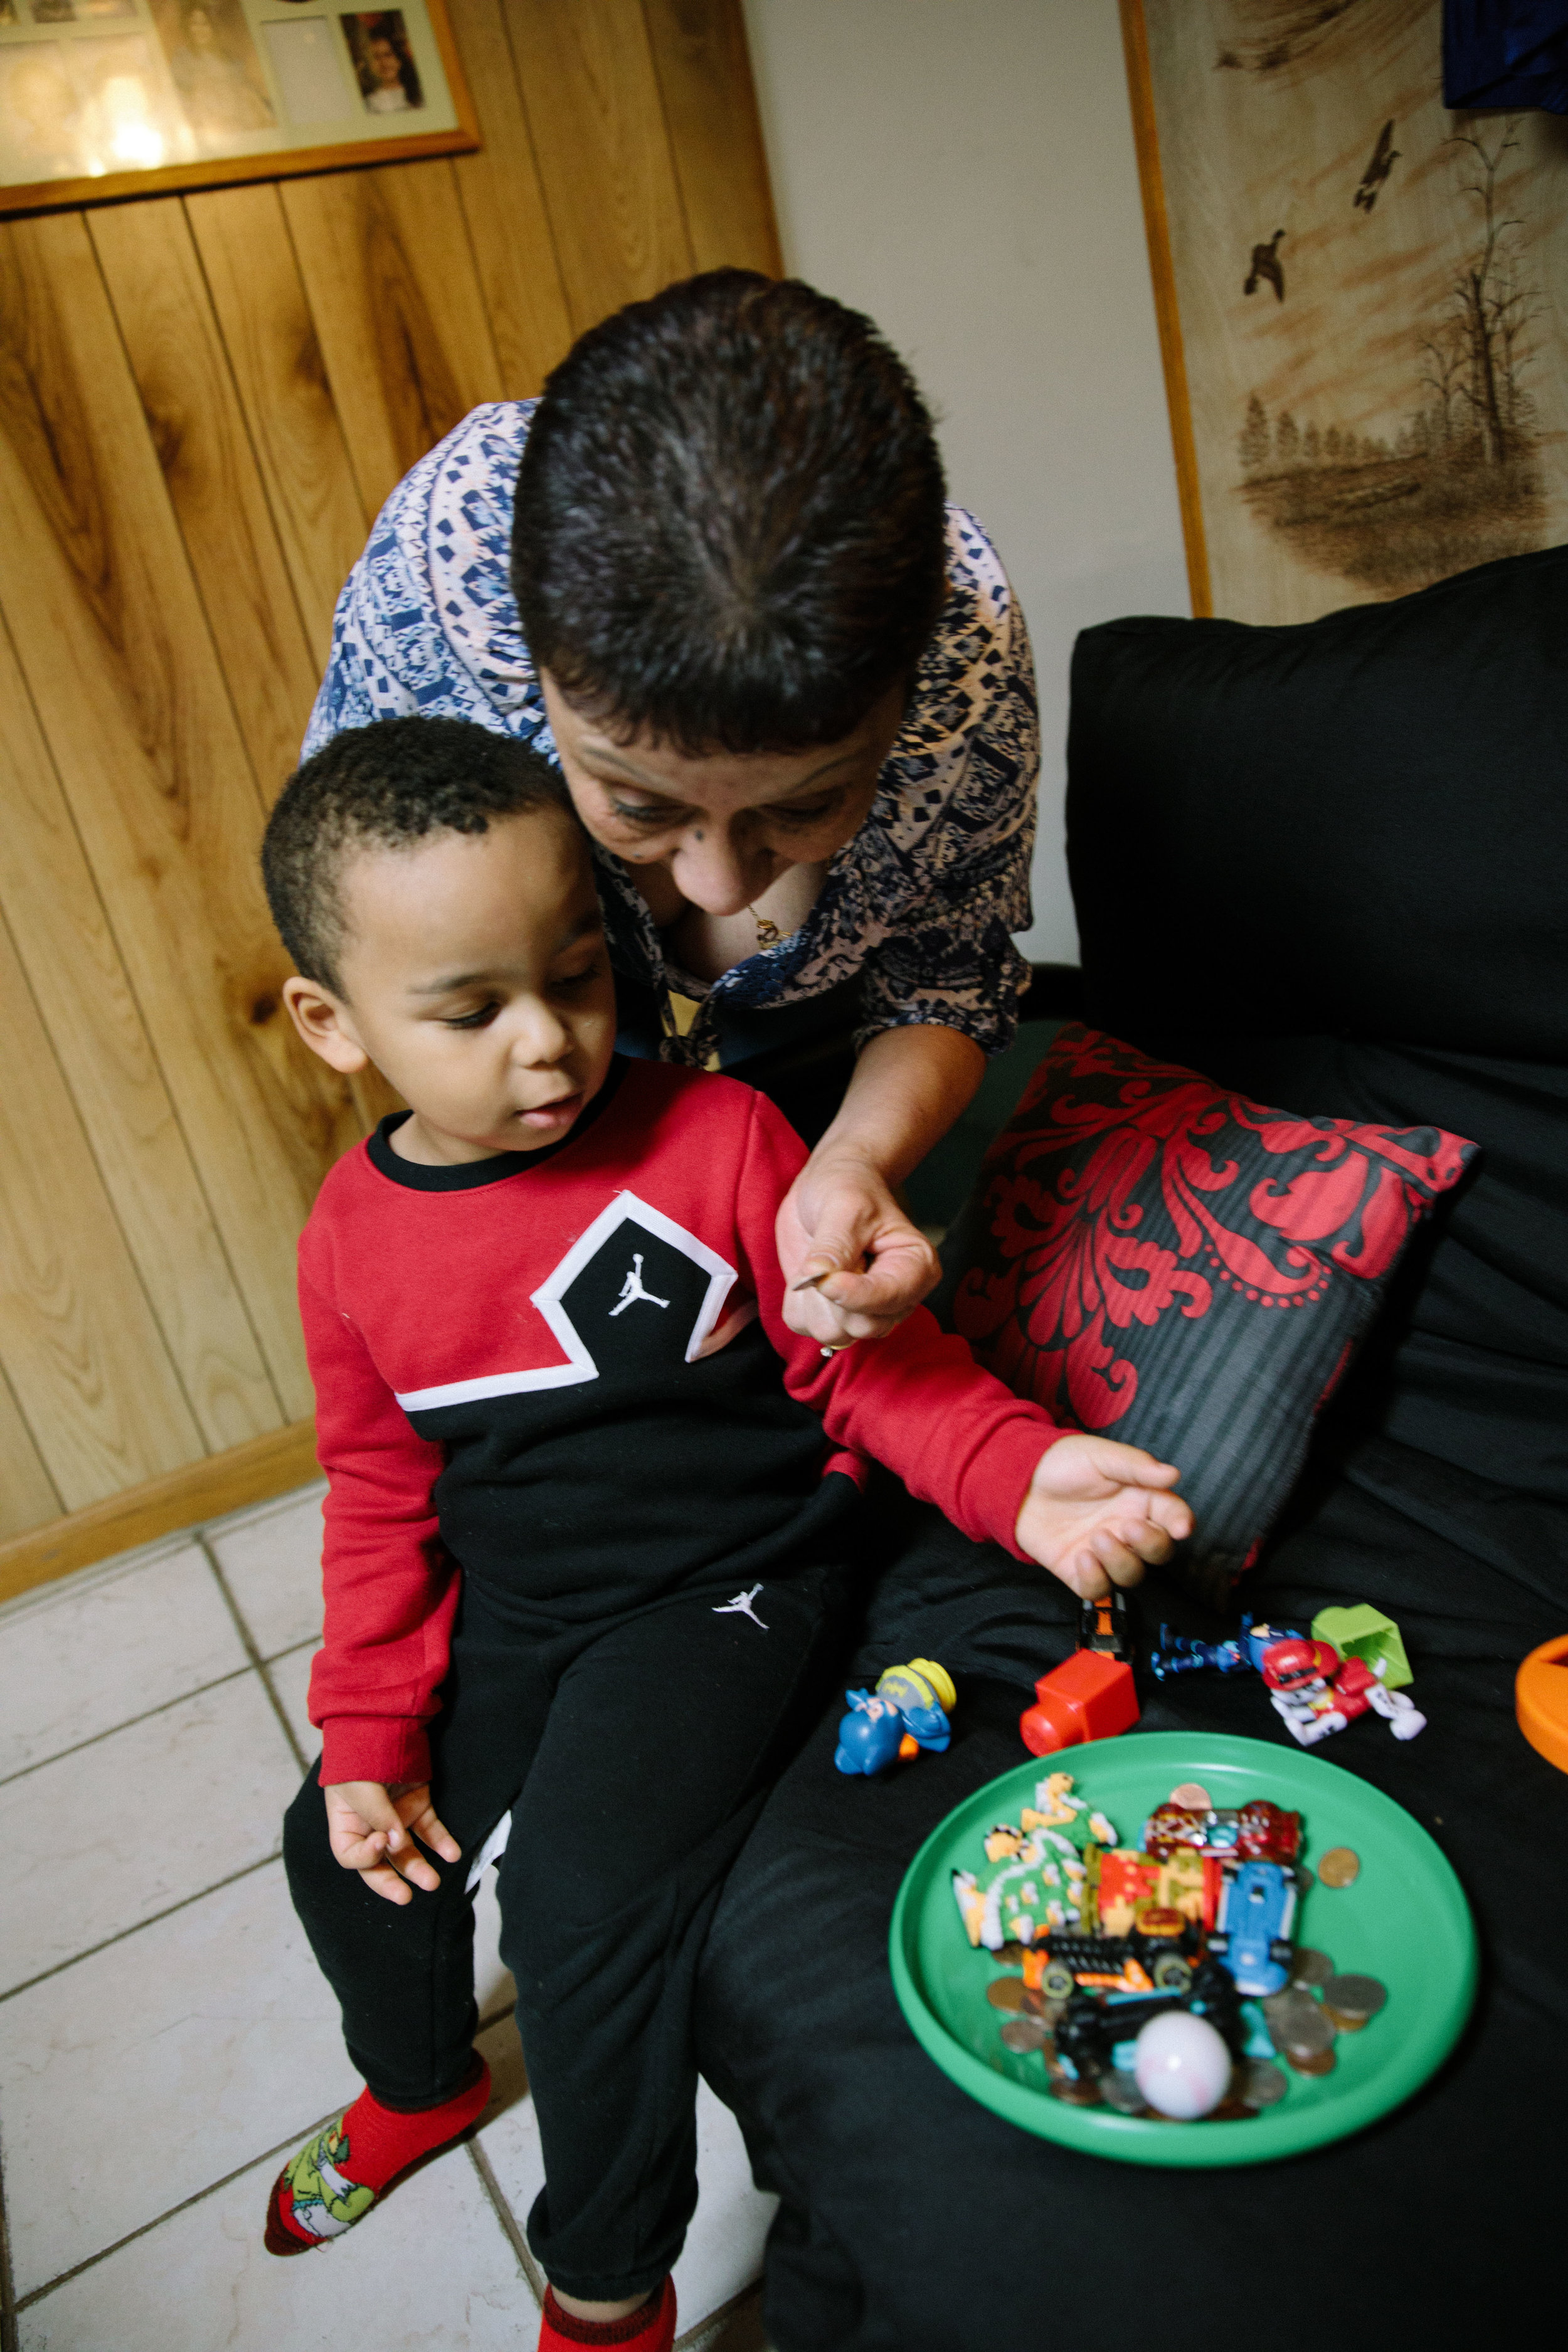 Elizabeth Ramirez plays with her three year old grandson, Dee Jay, who was named in honor of her late son, Dee Jay Rodriguez. Elizabeth's son was shot in killed in October 2011, four years before his nephew and namesake was born. Elizabeth helped found Parents for Peace and Justice, a support and advocacy organization that helps families who have also lost children to gun violence in Chicago. MCC partners with Parents for Peace and Justice to help support their important work.